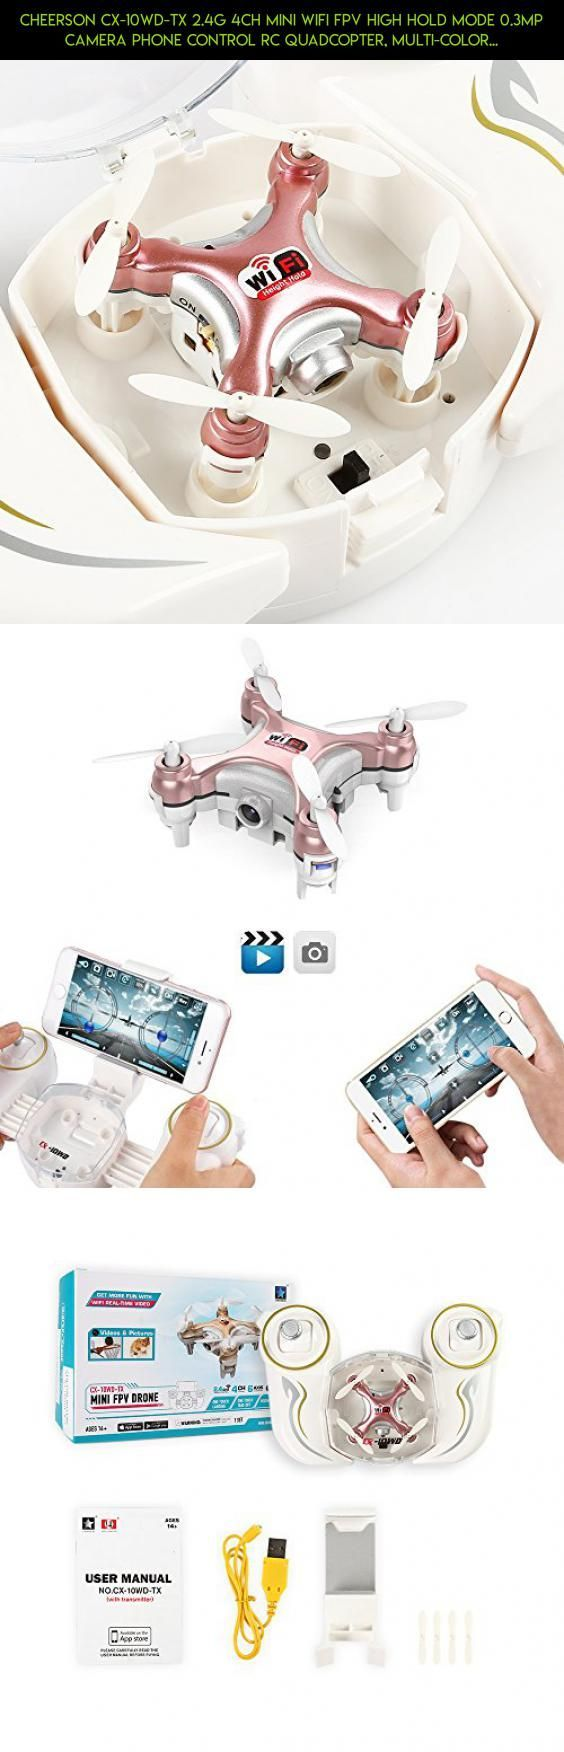 Cheerson CX-10WD-TX 2.4G 4CH Mini Wifi FPV High Hold Mode 0.3MP Camera Phone Control RC Quadcopter, Multi-color LED Lights One Key Take Off/Landing, Dual Operating Mode (Rose) #tech #kit #drone #camera #gadgets #parts #plans #fpv #technology #racing #shopping #products #cheerson #10wd